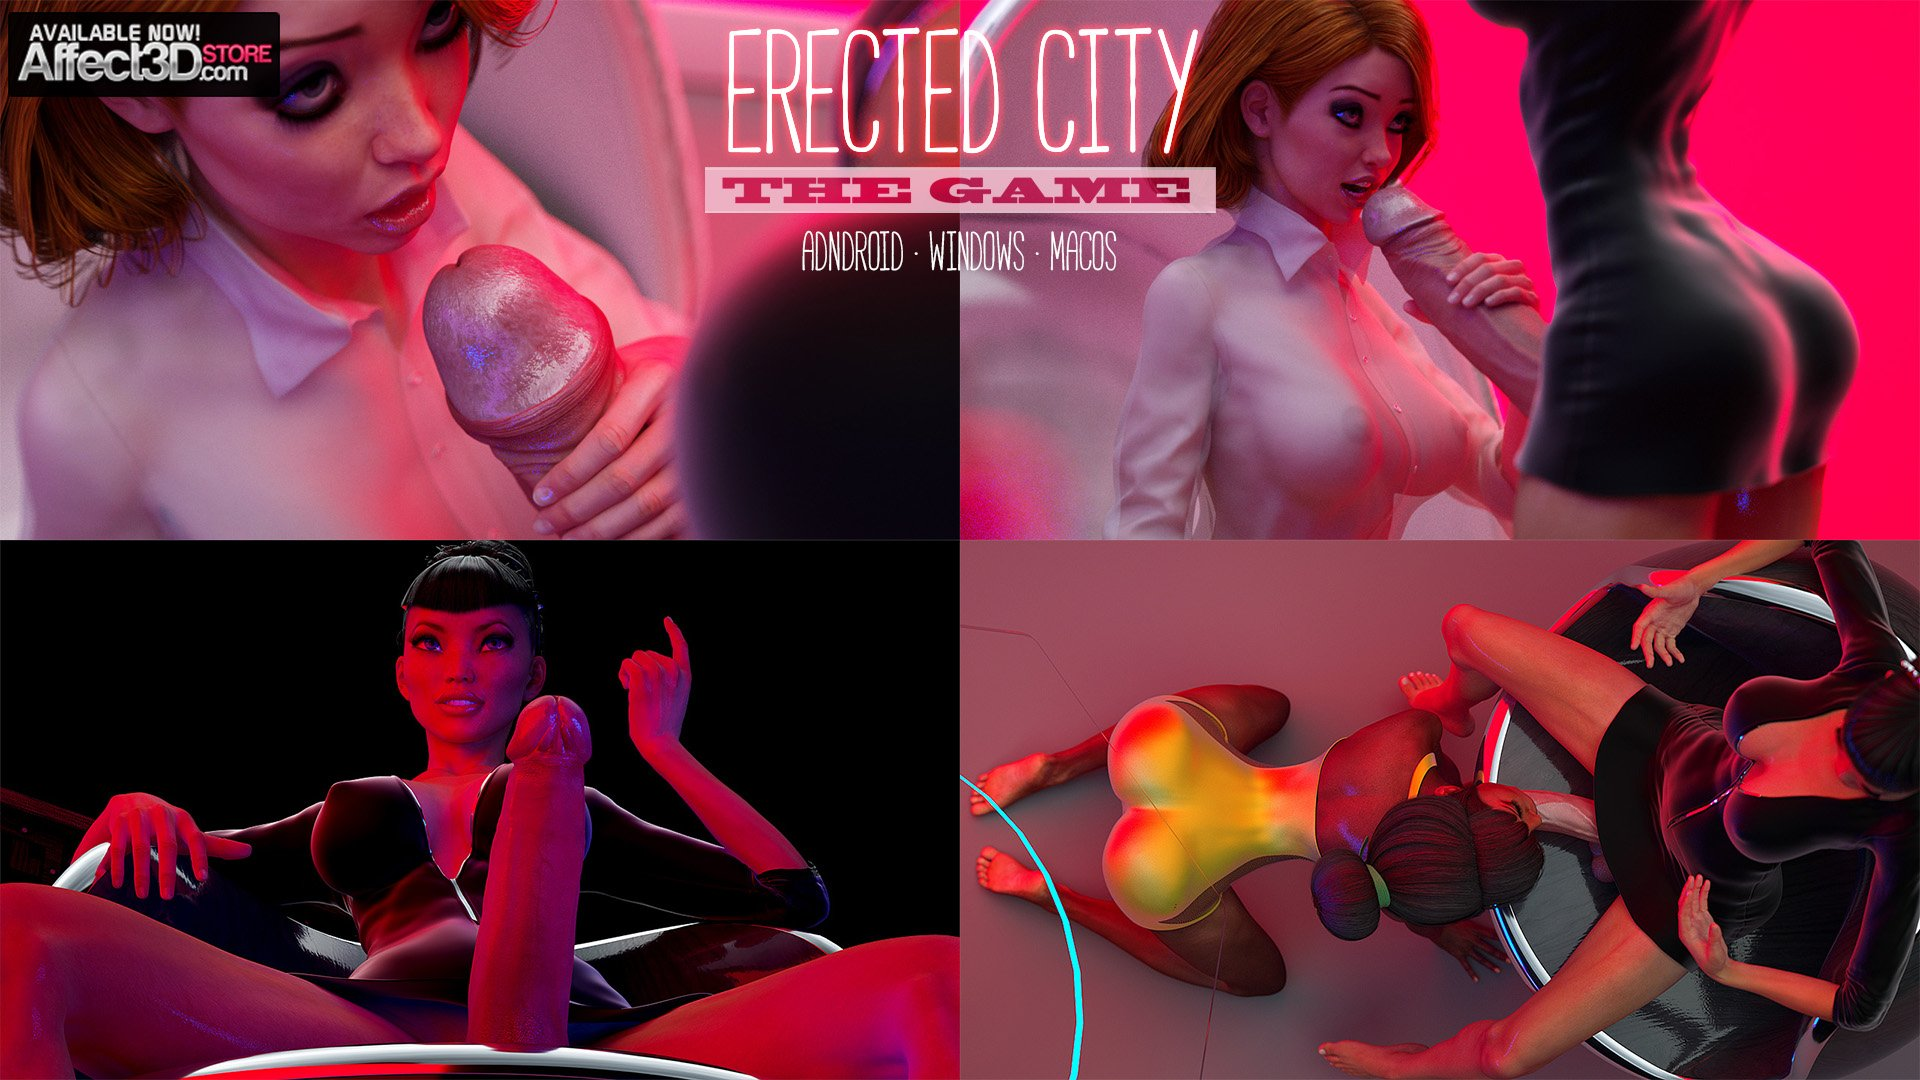 Erected City The Game! Play Smerinka's First 3D Porn Game!